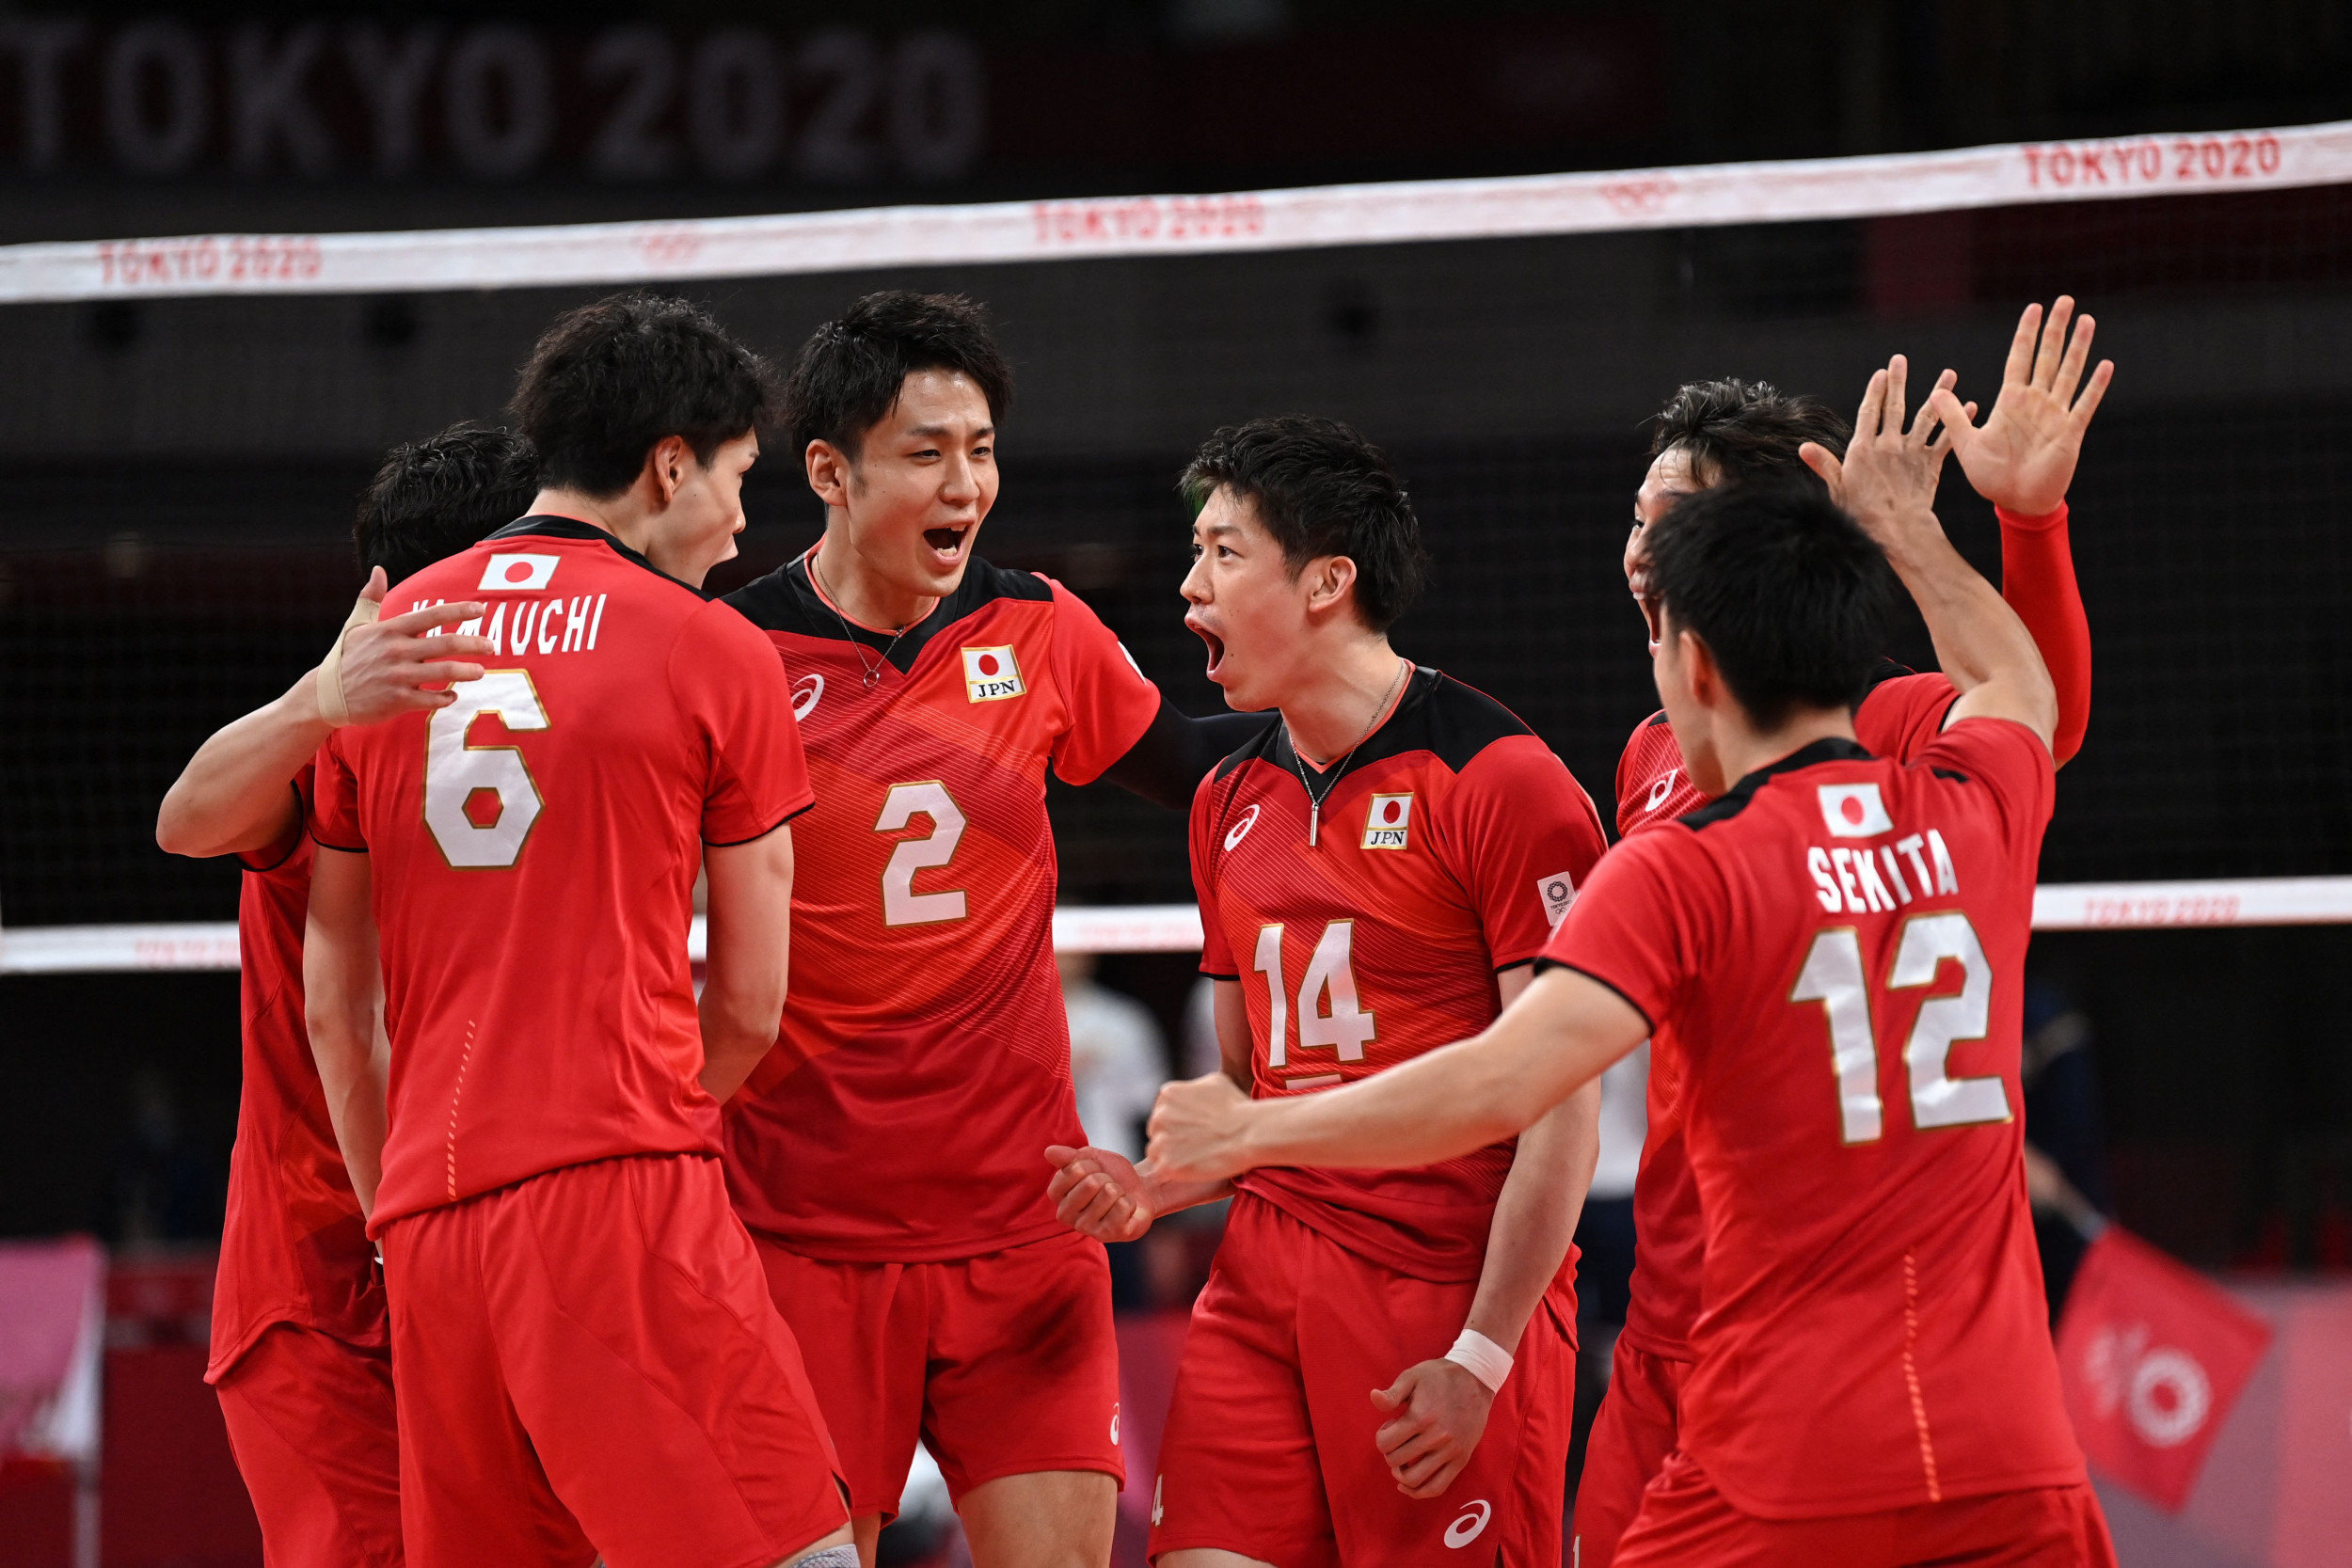 How 'Haikyuu!!' Made a Surprise Appearance at the Tokyo Olympics